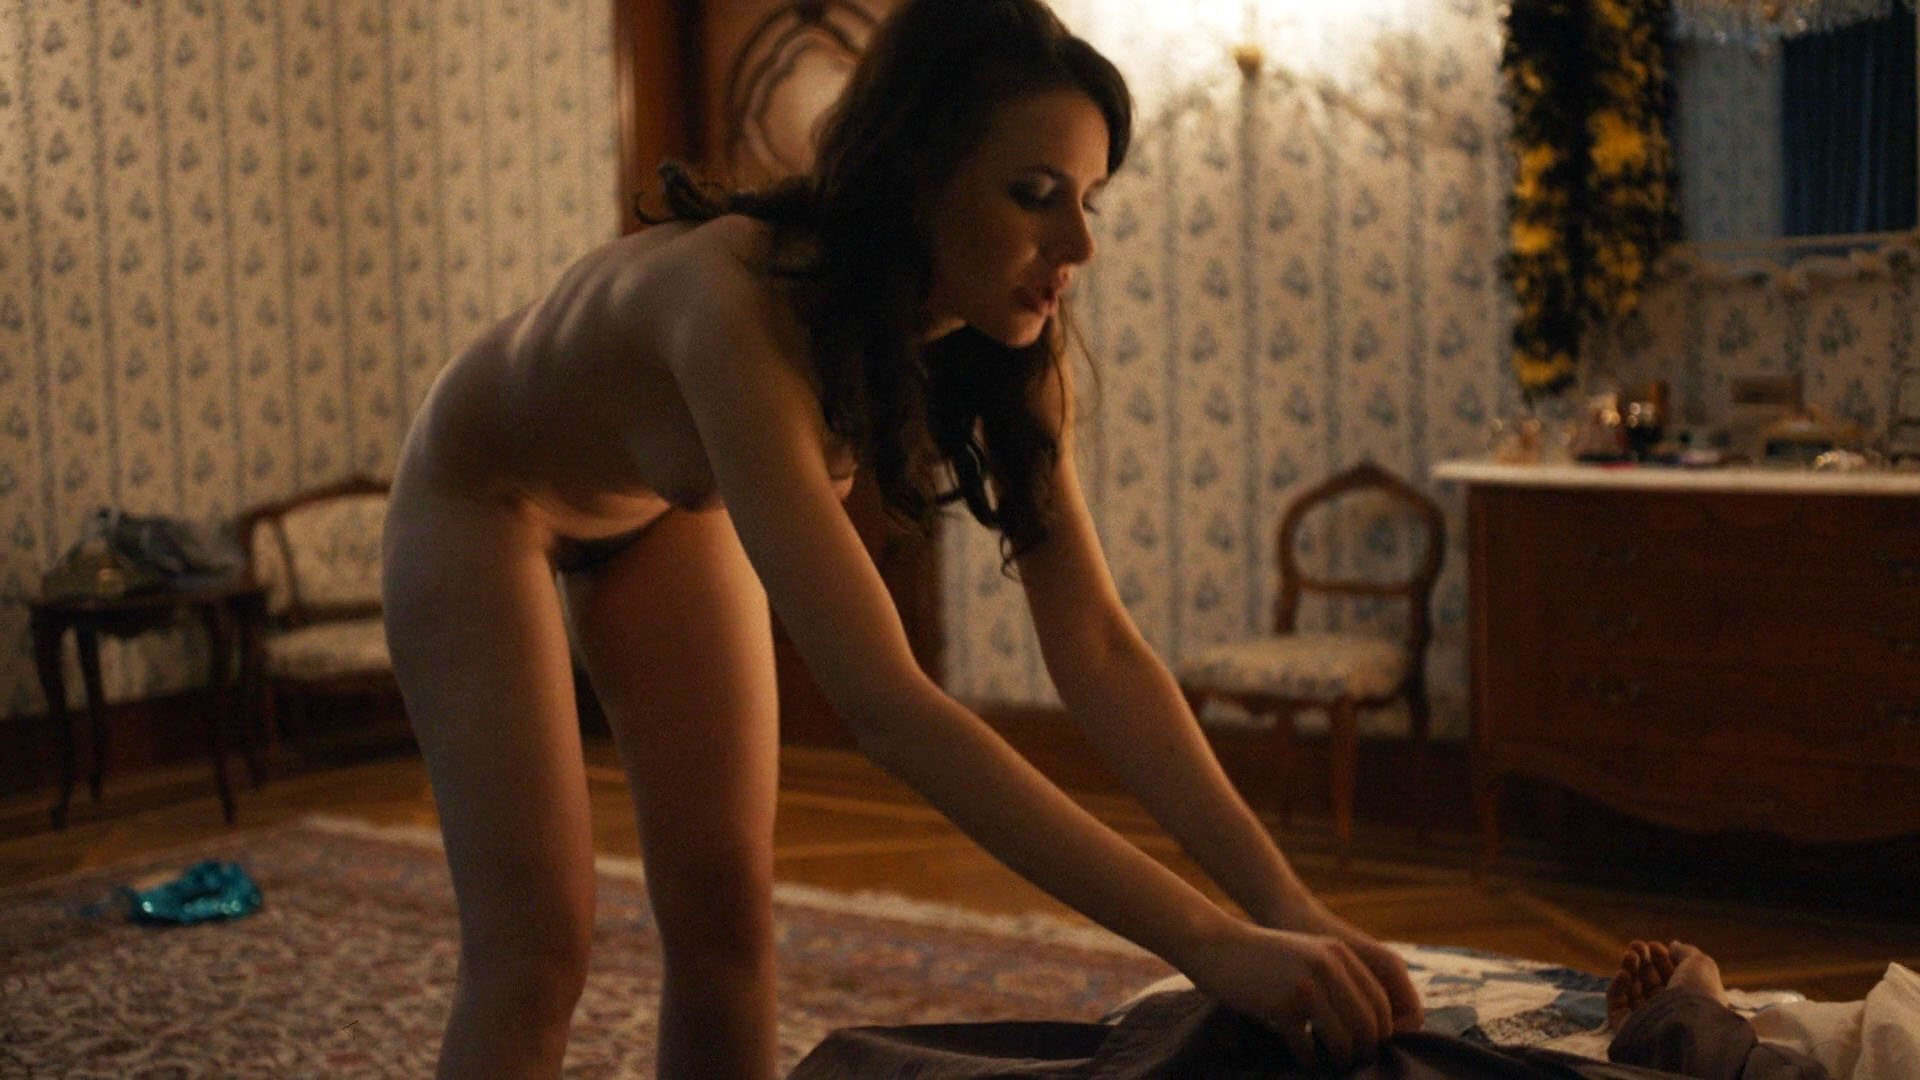 Caitriona balfe nude sex in outlander on scandalplanetcom - 1 part 7